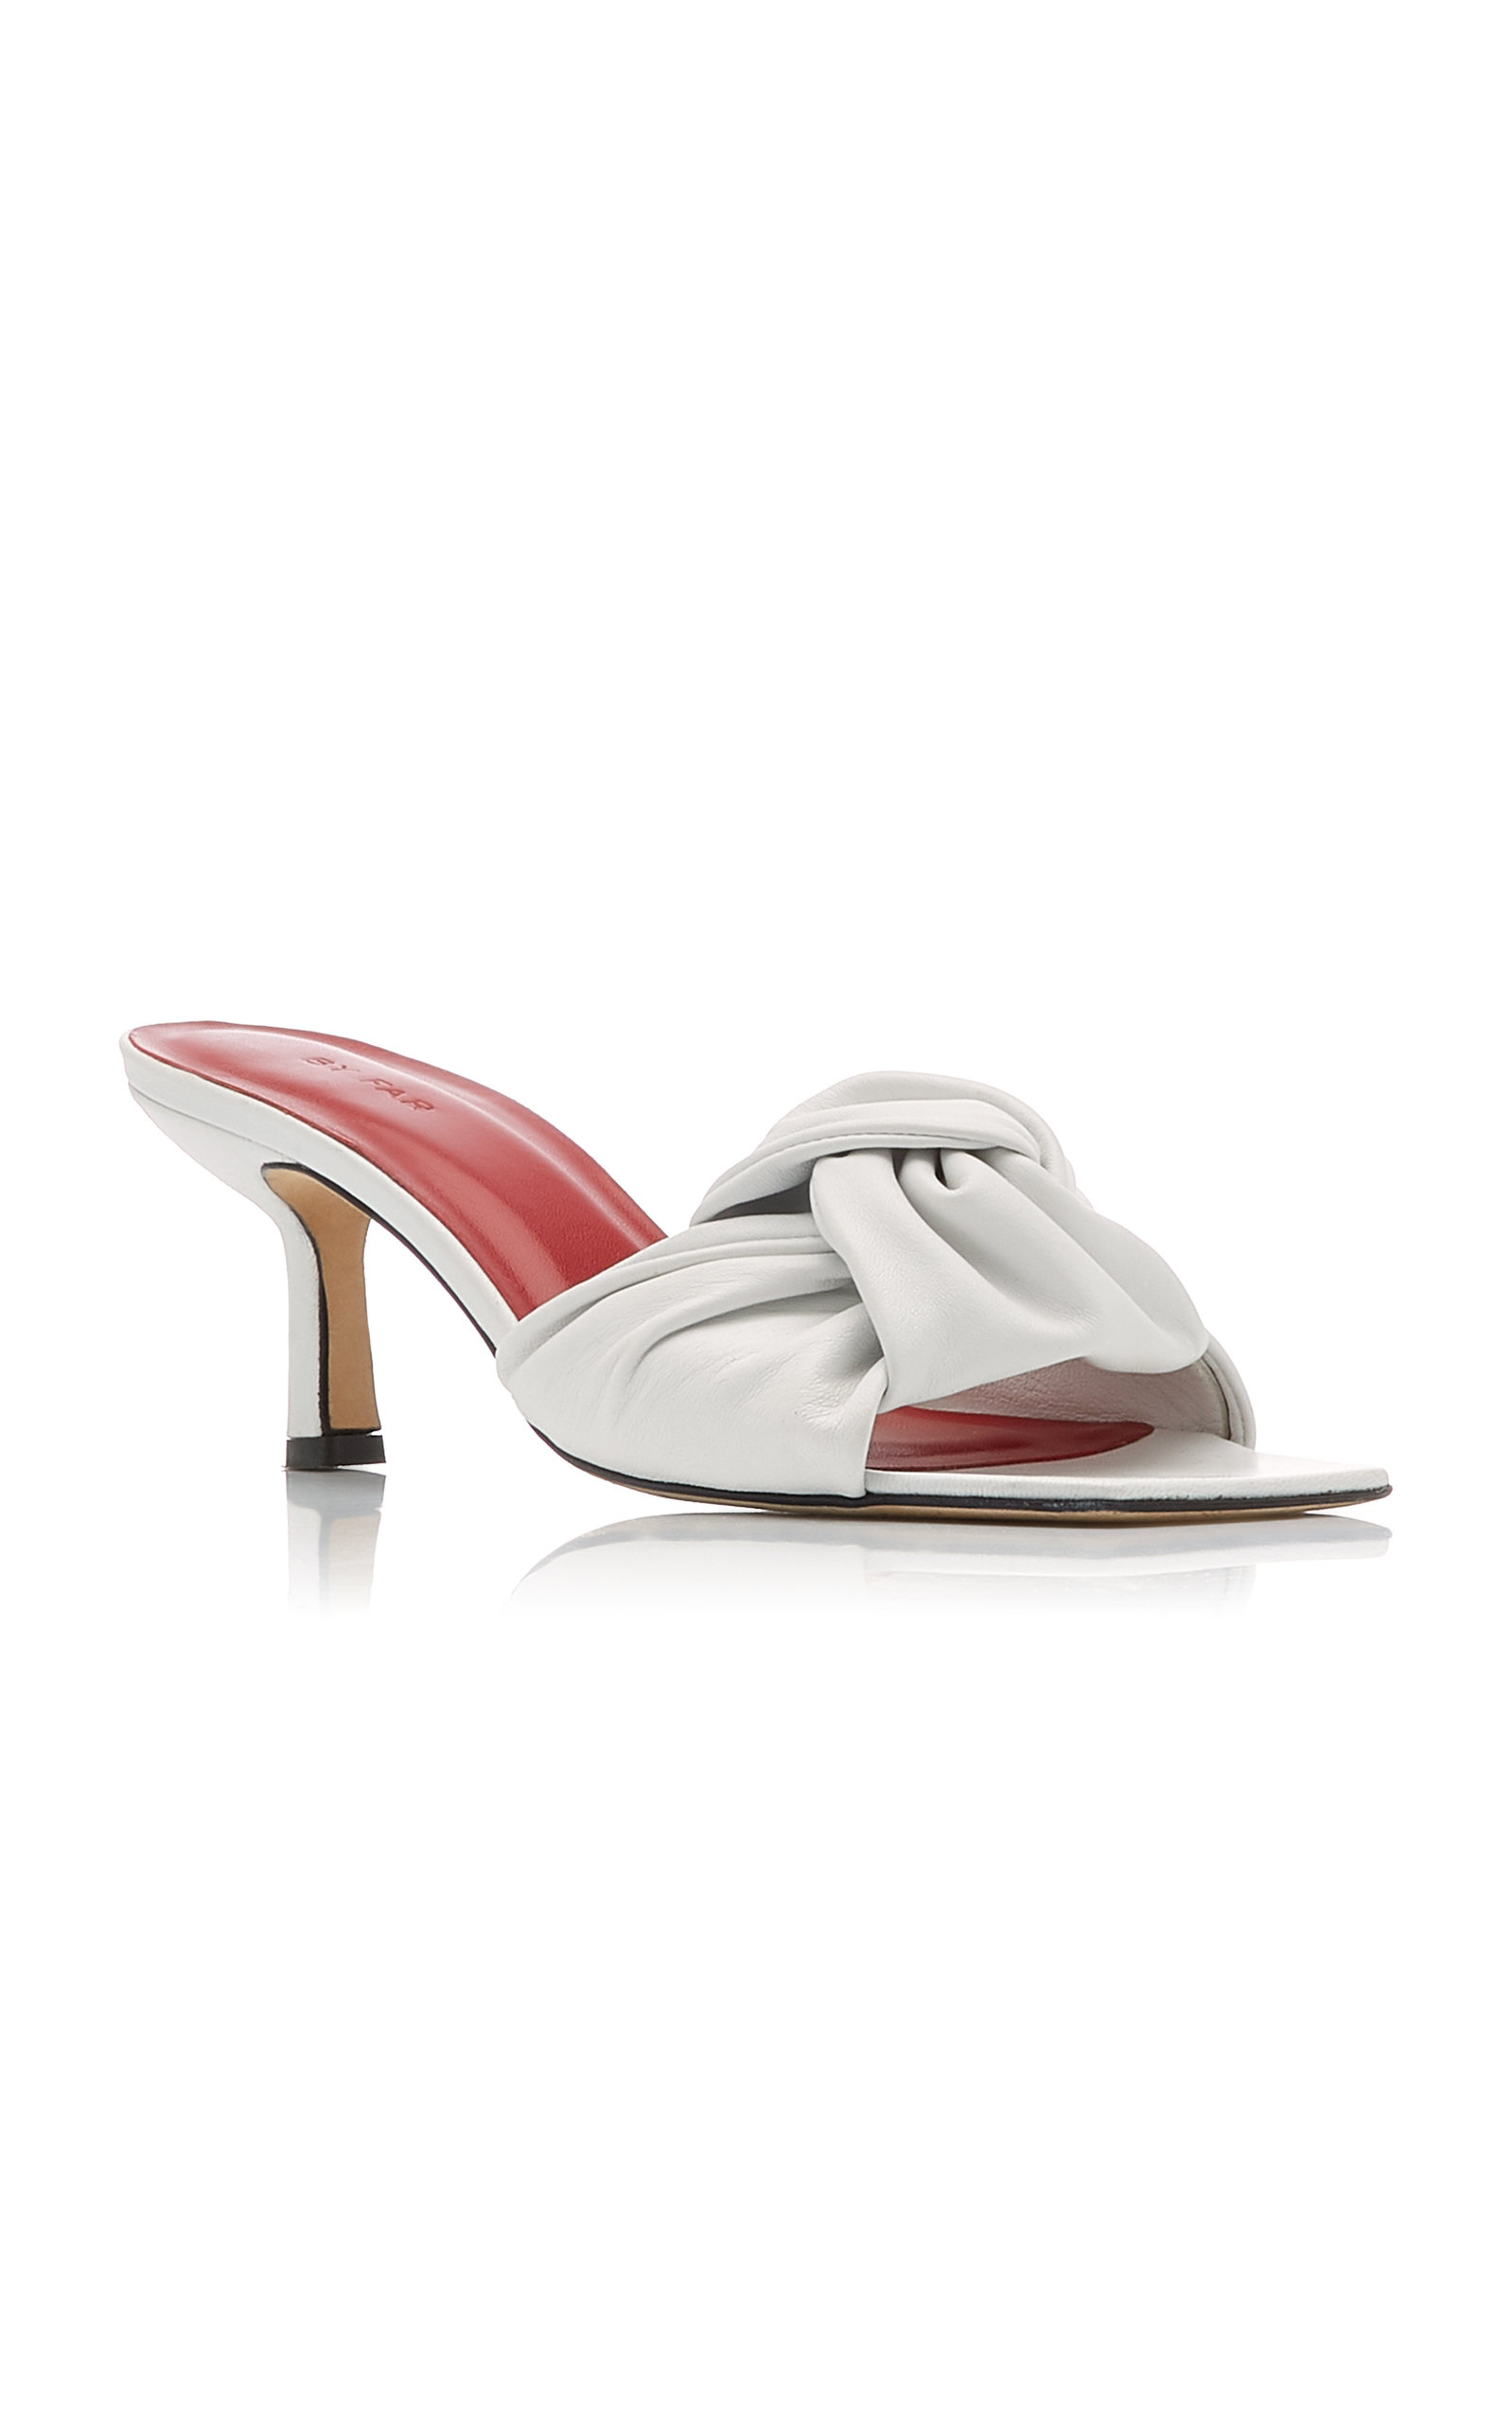 BY FAR Leathers LANA LEATHER SANDALS